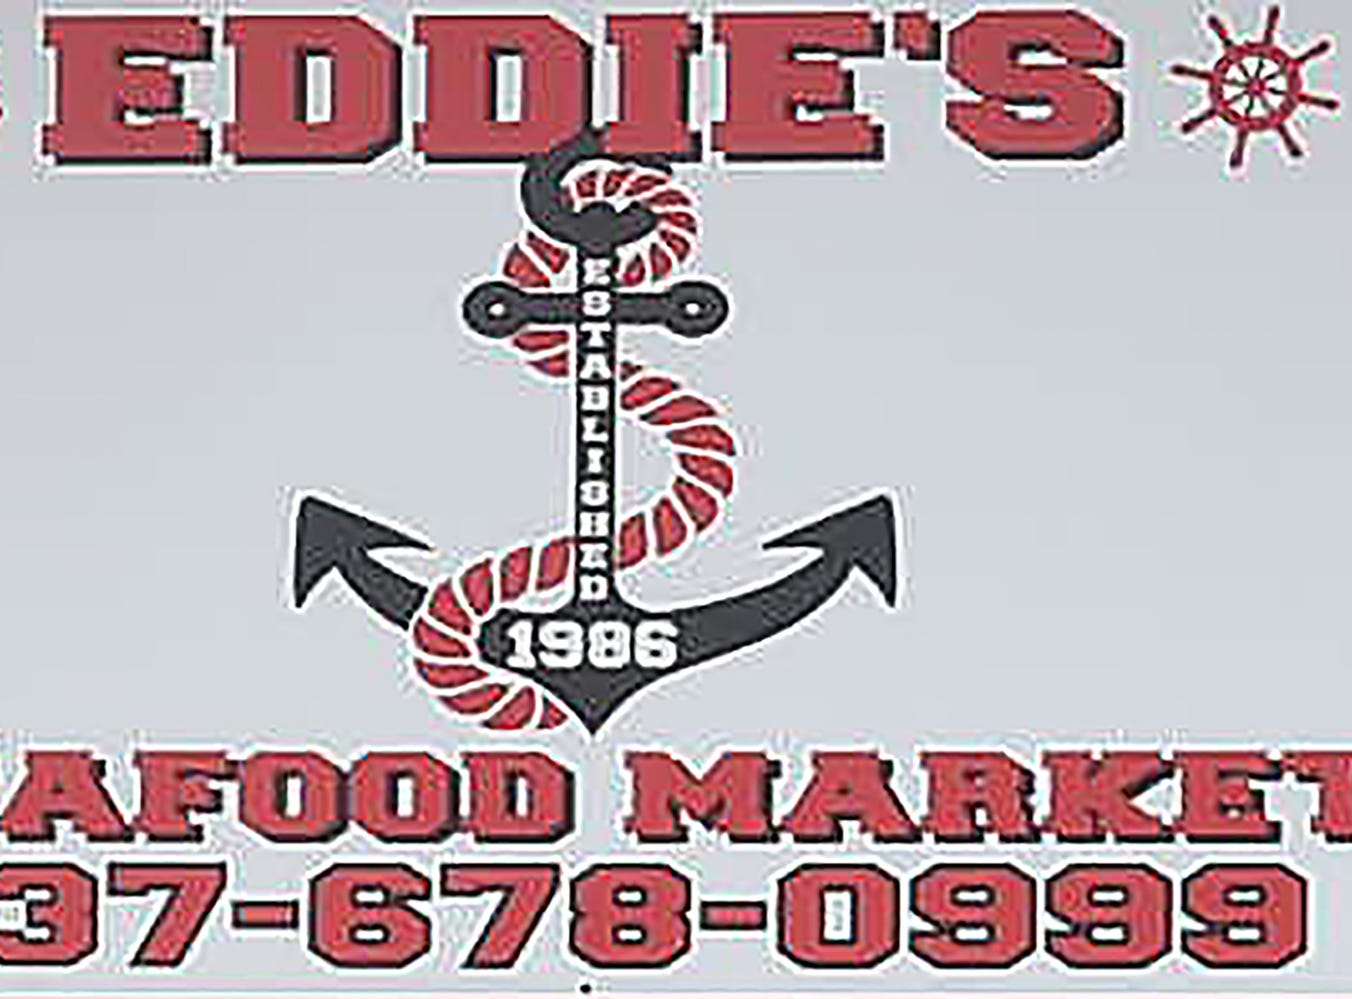 The aroma of boiled crawfish was in the air Saturday as Eddie's Seafood Market held their grand opening celebration with music by Big Al and food and fun for all. Eddie's Seafood Market is located at 905 South Walnut Street and is owned and operated by Shannan Touchet. Hours of operation are Monday-Thursday 11 a.m. to 9 p.m., Friday-Saturday 11 a.m. to 10 p.m. and Sunday 11 a.m. to 8 p.m. On hand for the ribbon cutting ceremony were representatives from Opelousas city government at well wishers from throughout the Opelousas community.T Image may contain: 1 person, smiling, food and indoor